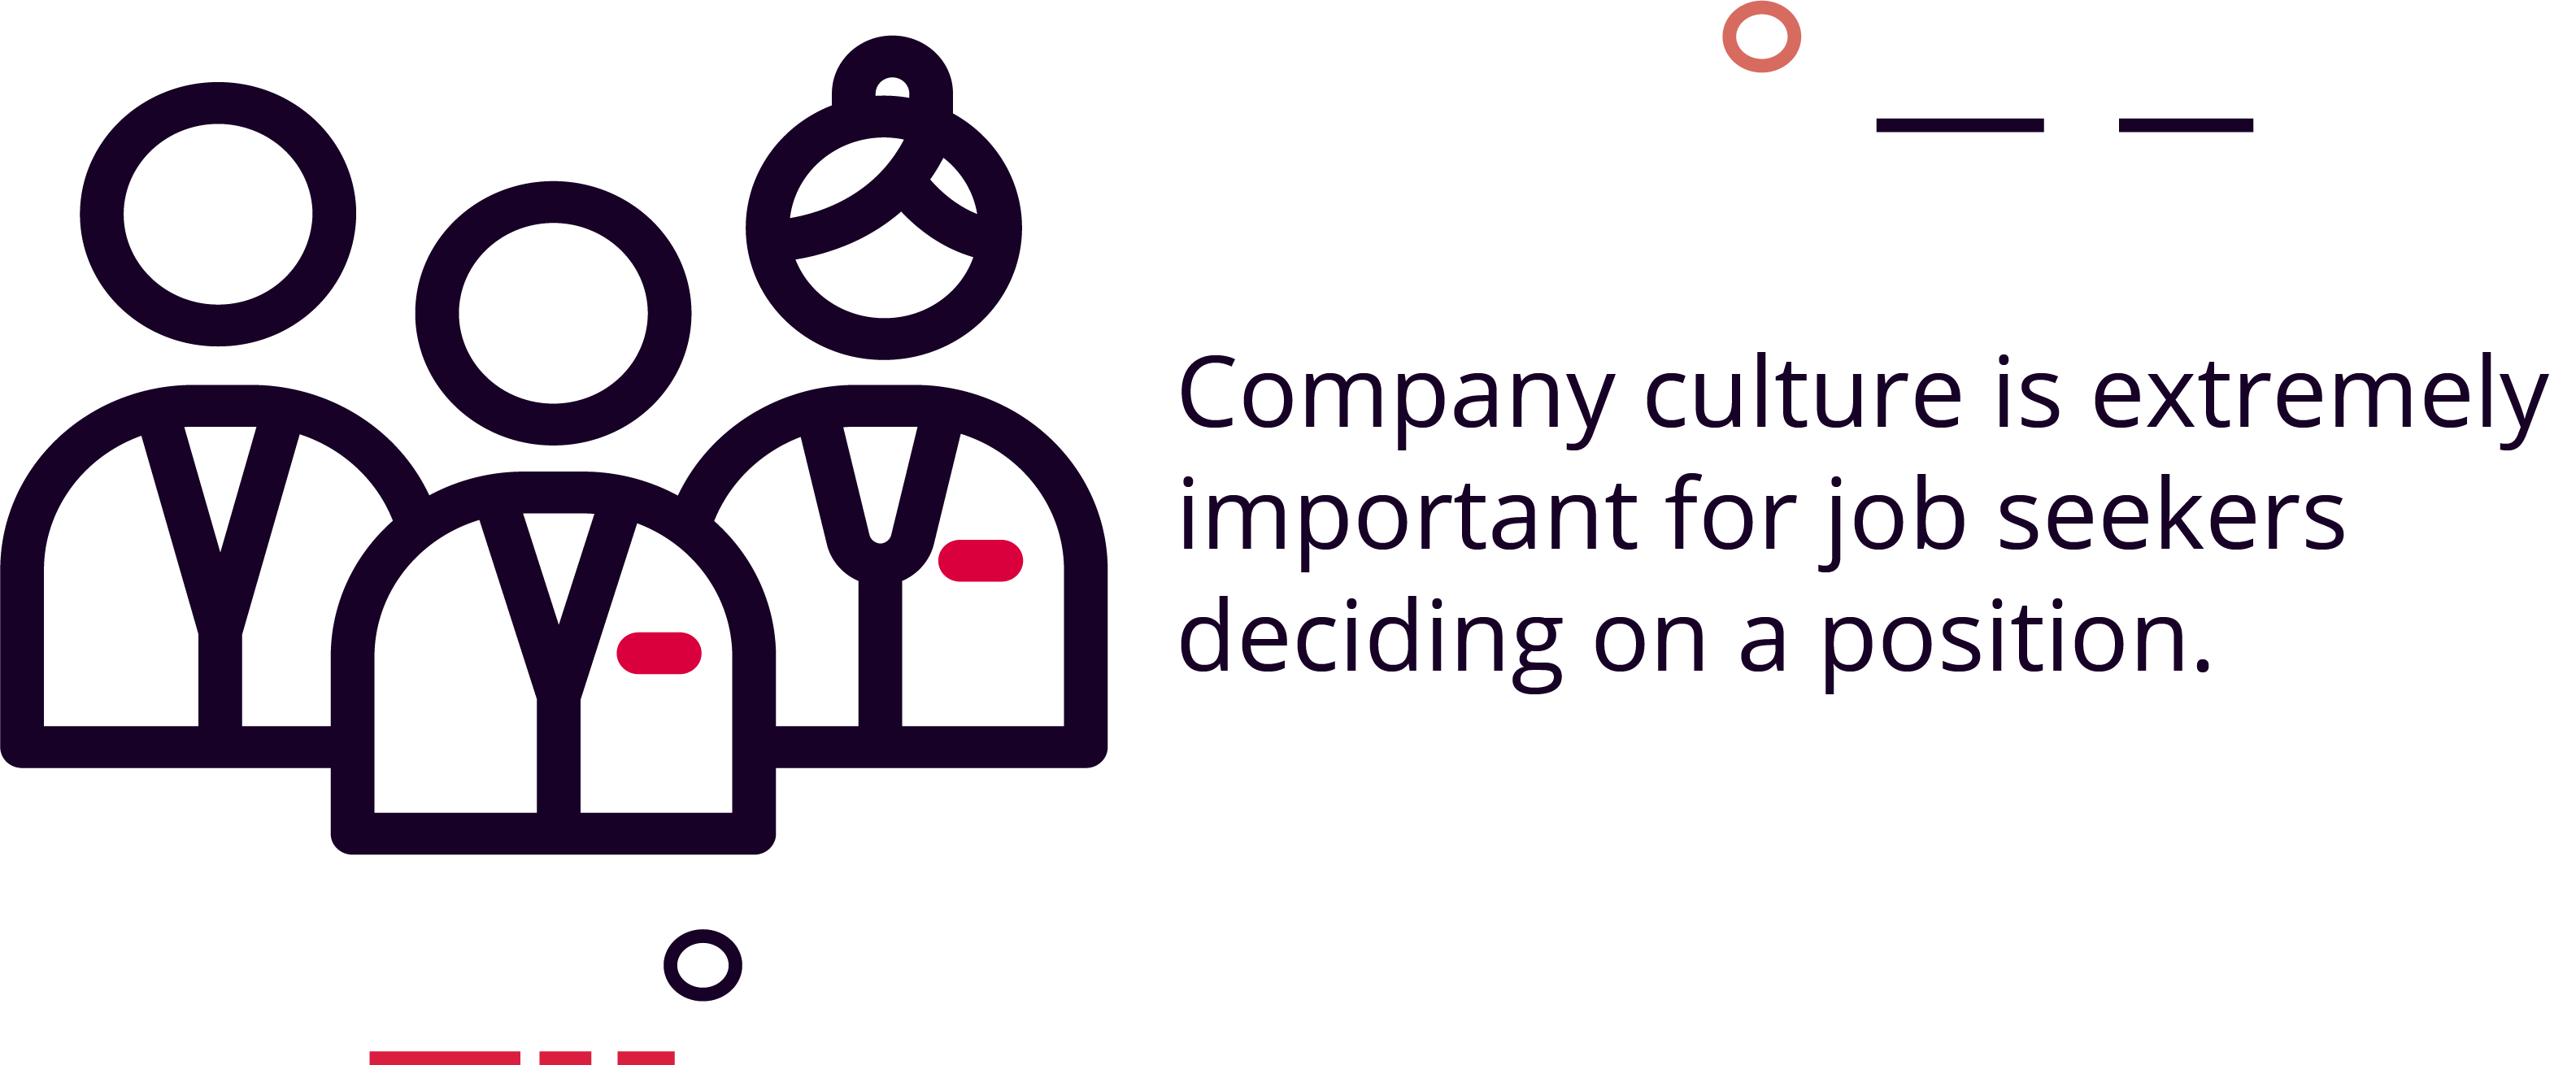 Company culture is extremely important for job seekers deciding on a position